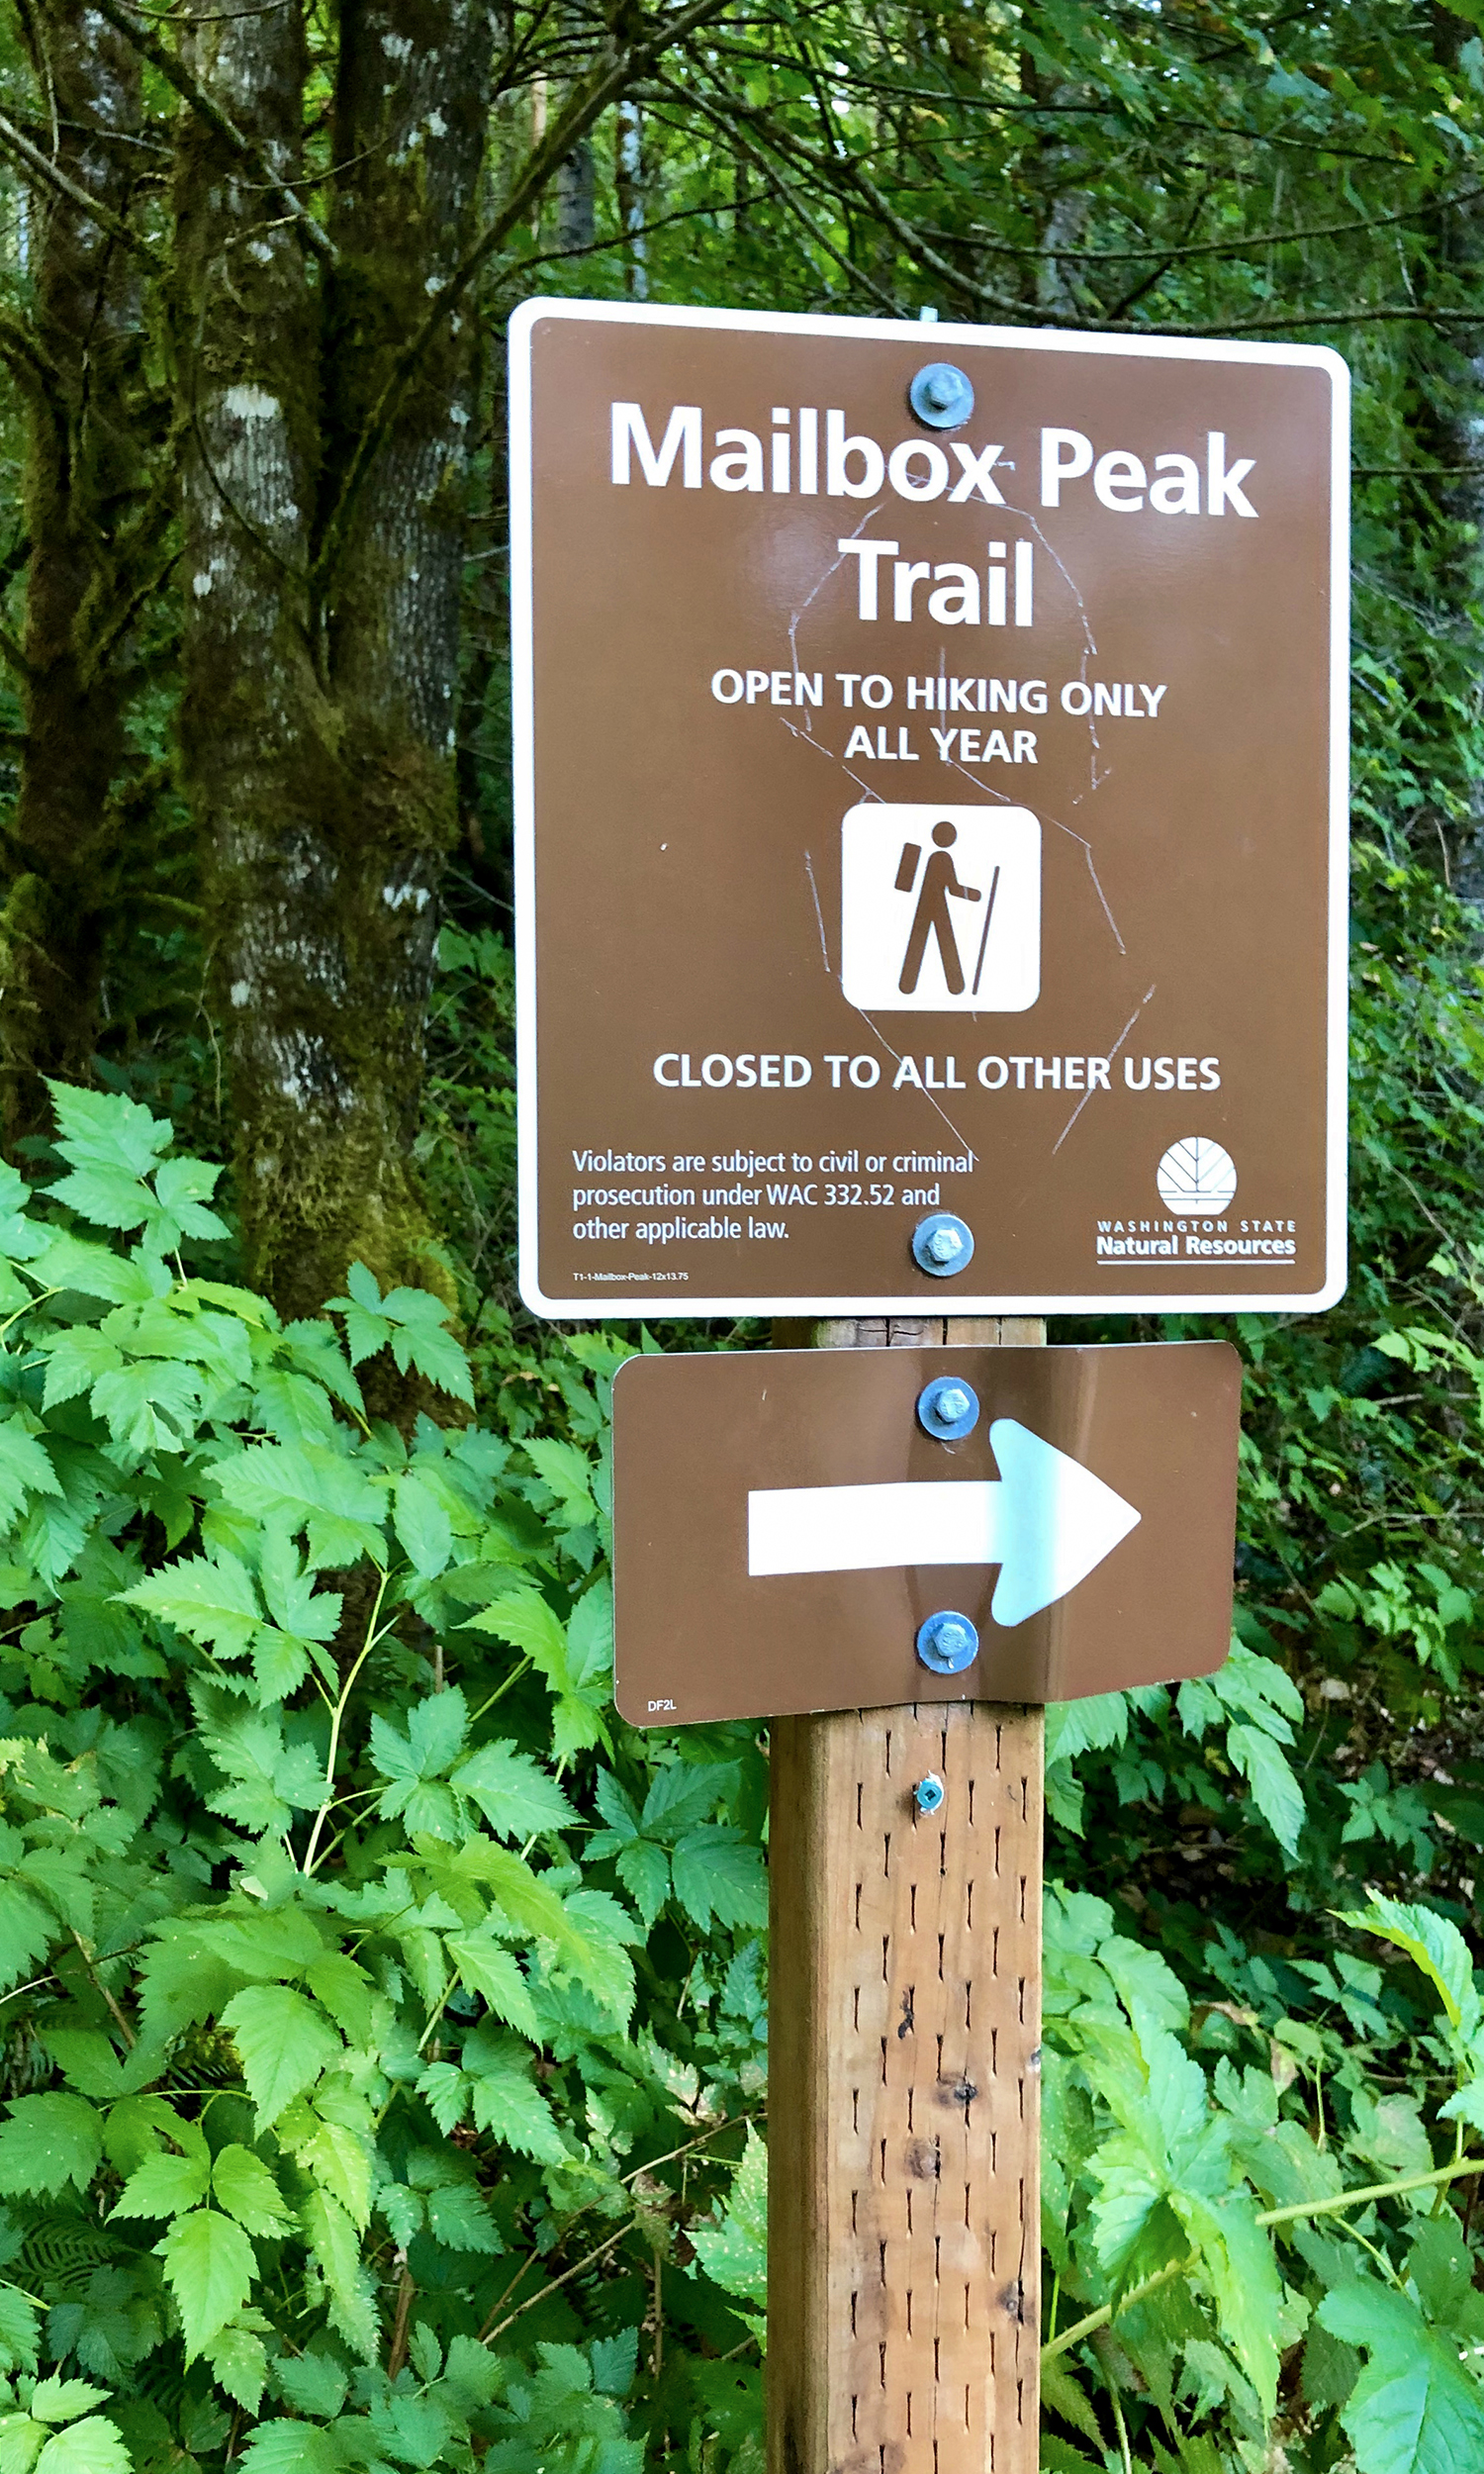 <p>Two main trails lead to the summit. The Old Trail leads hikers to the summit quicker, at around 5.4 miles round-trip and about 740 feet in elevation gain per mile, but is riddled with challenging root systems, dense forests to navigate and a thigh-burning ascent. The New Trail, built in 2014, follows along a properly maintained, easier-on-the-knees trail, and clocks in at 11.6 miles round-trip. (Image:{&nbsp;}Rachael A. Jones / Seattle Refined){&nbsp;}</p>